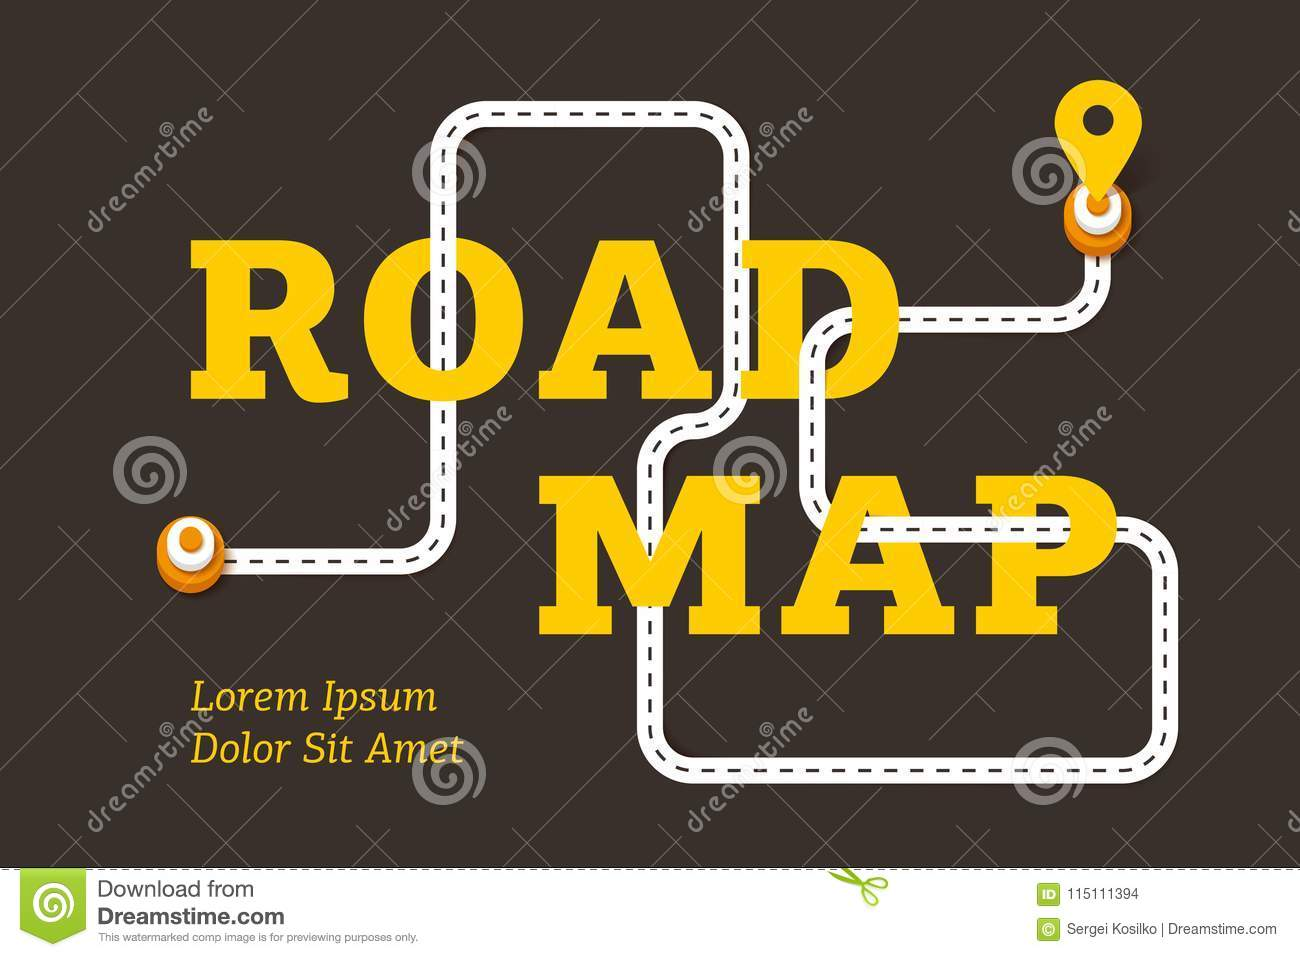 Road Map Business Concept With Winding Road Stock Vector ... Infographics Directional Map on treasure map, grand canal square dublin map, show directions on a map, nottingham uk map, reference map, hampton roads map, modern map, ancient world map, real estate map, area map, india map, digital map, navigational map, longitudinal map, construction map, giving directions map, simple map, topological map, north direction map, north carolina state university campus map,